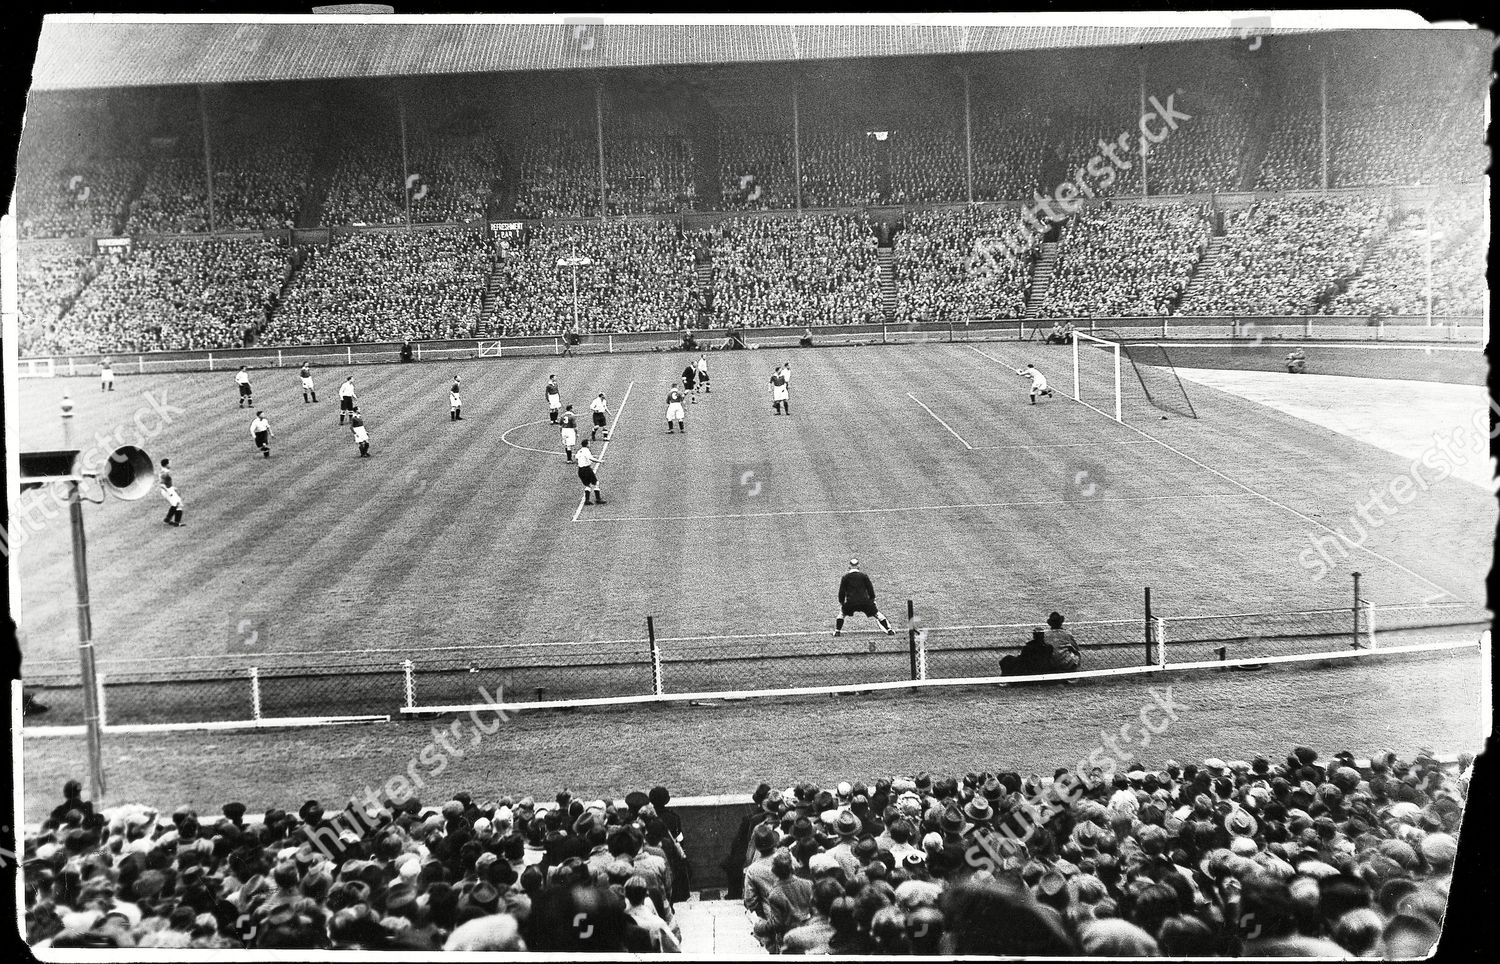 Stock photo of 1945 Wartime Fa Cup Final Between Chelsea And Millwall Won By Chelsea 2-0. Chelsea Goalkeeper Black Saving A Shot During The South Cup Final At Wembley.